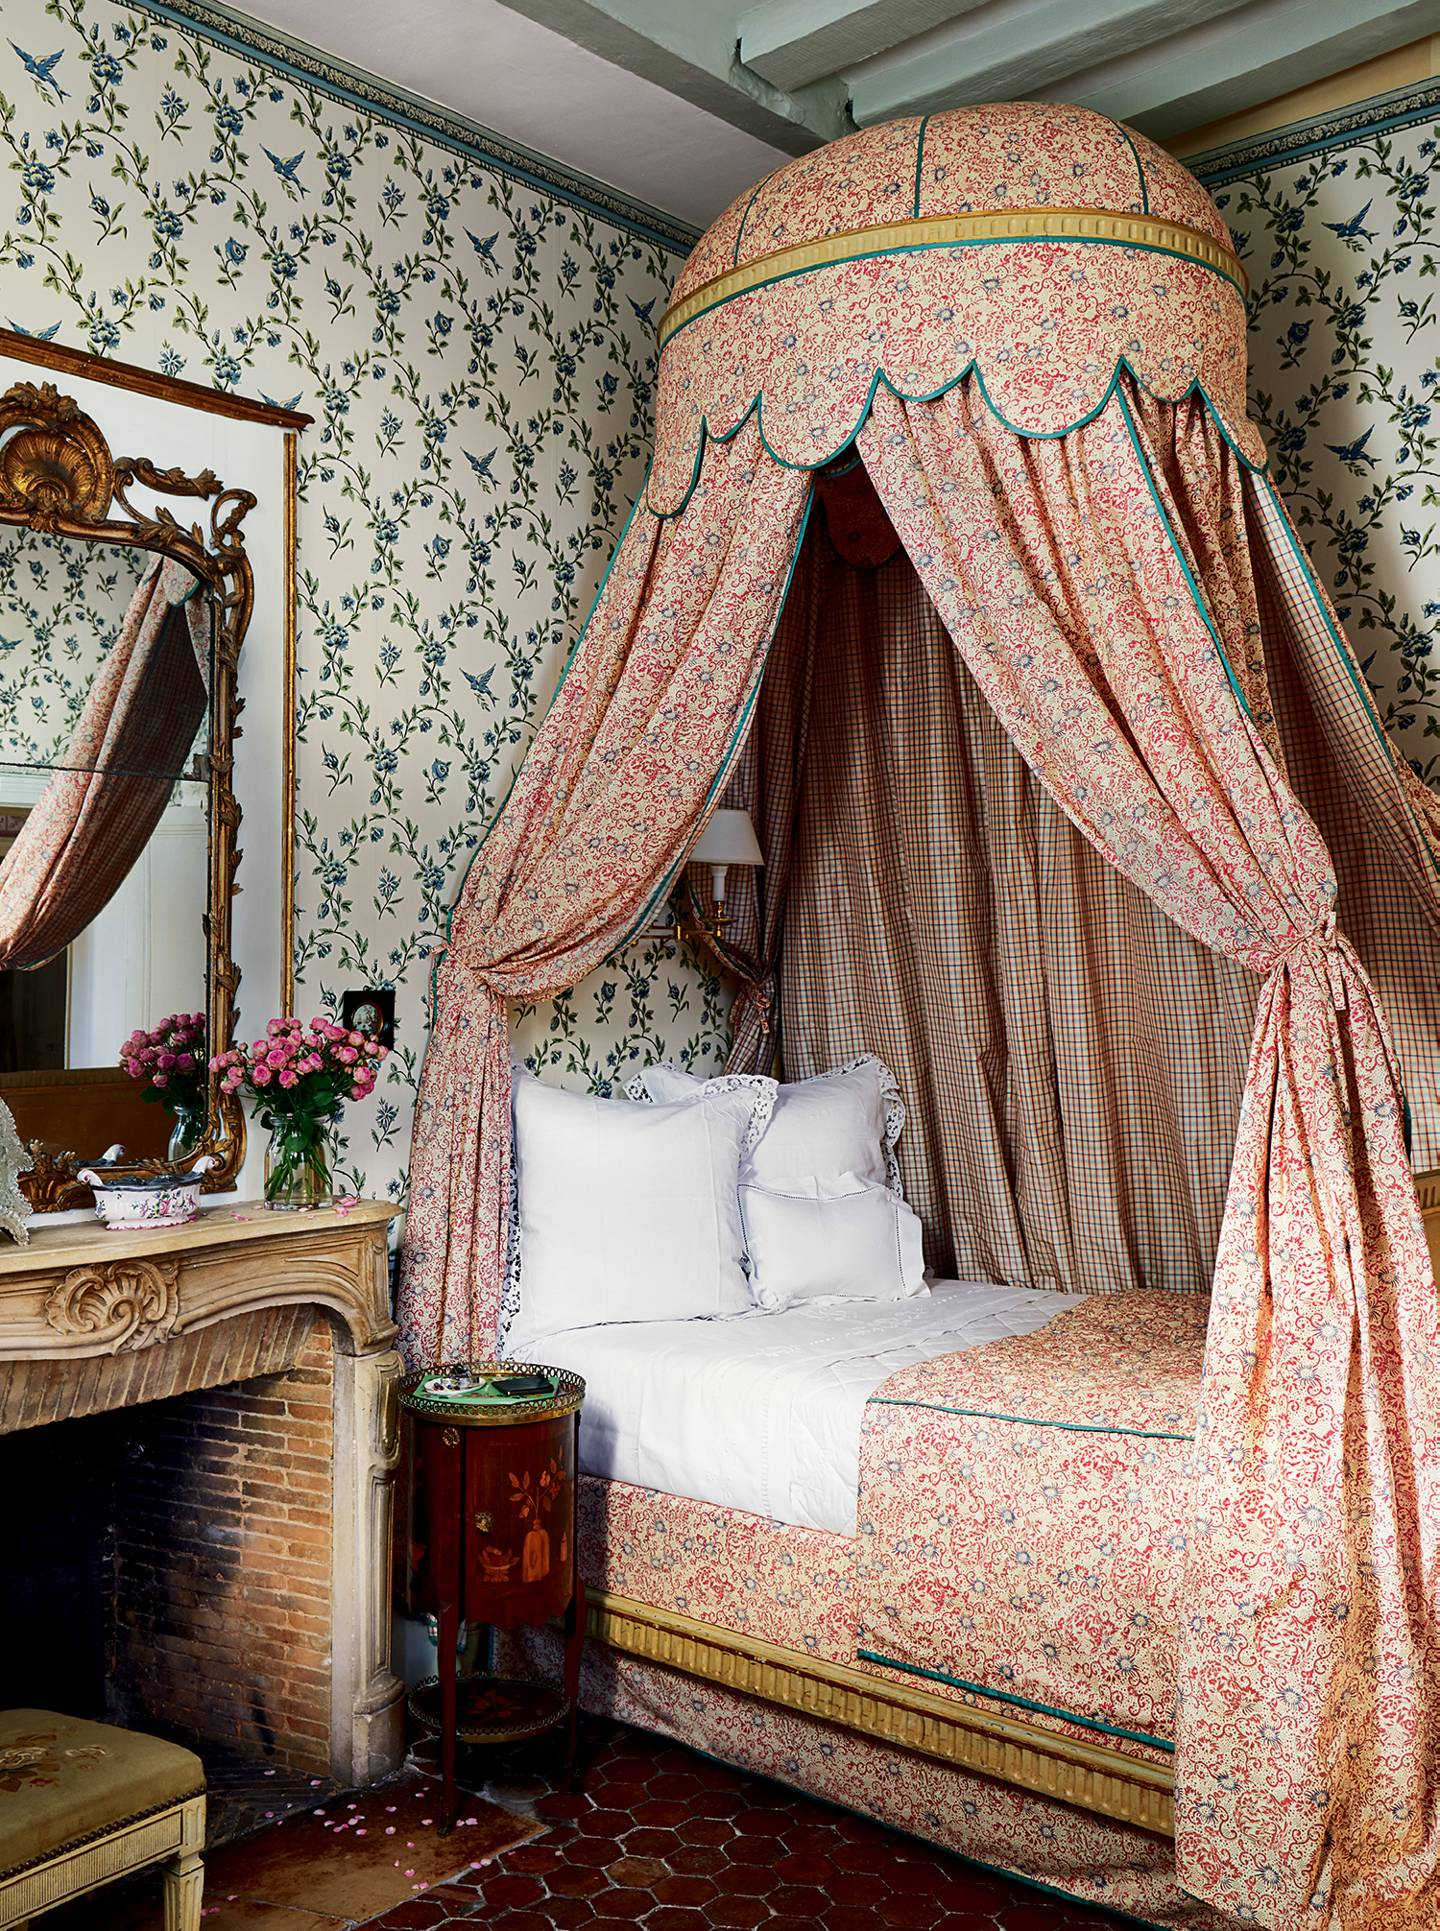 20 ideas for canopy beds to inspire your own country house-style bedroom